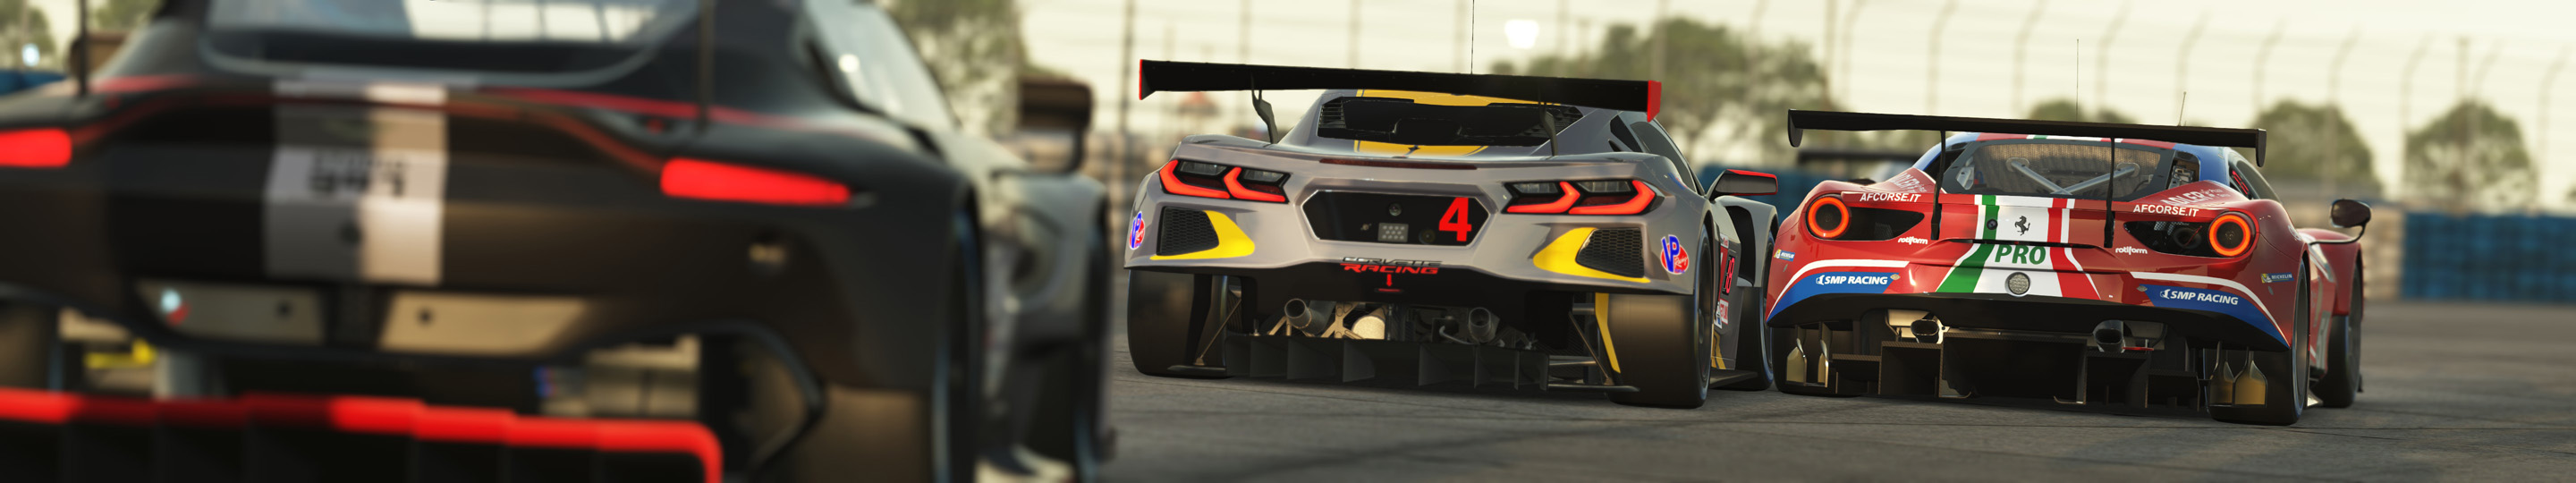 4 rFACTOR 2 CORVETTE C8 & FERRARI GTE at SEBRING copy.jpg